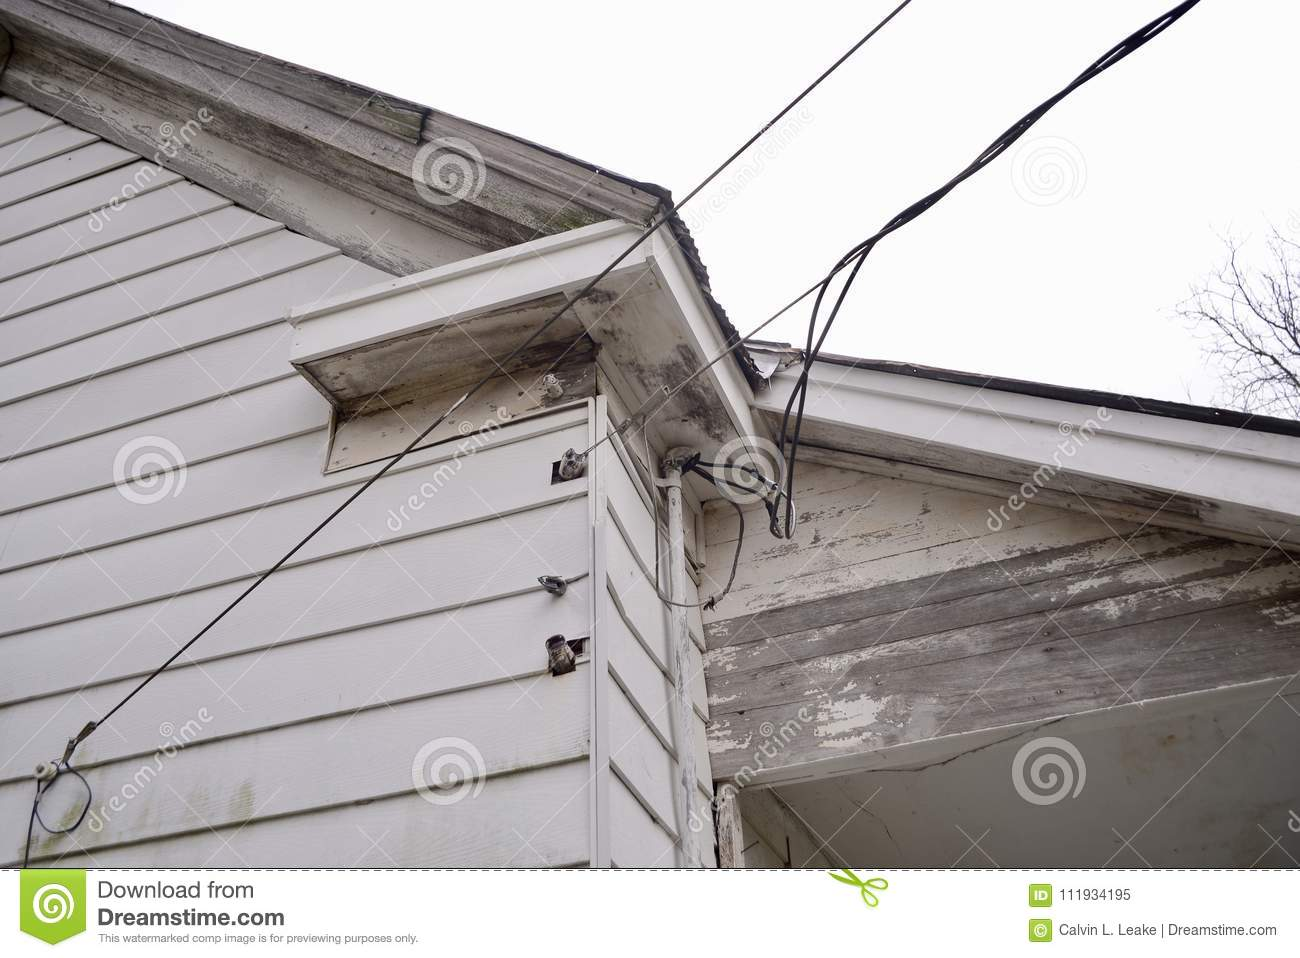 hight resolution of outdated method of running electricity and electrical wiring to an older home that is not up to code